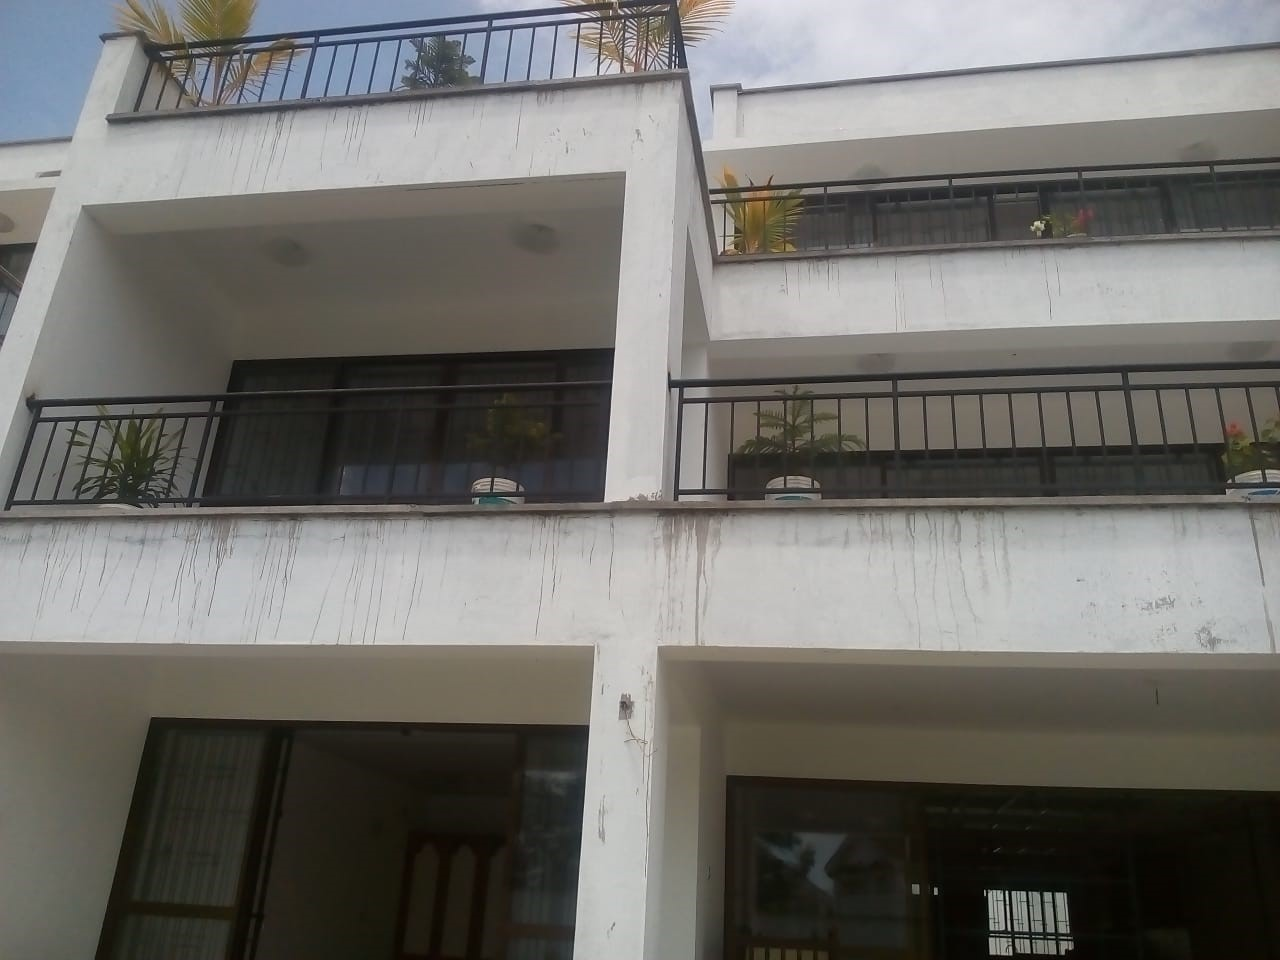 4 br newly built elegant maisonnettes for sale in Nyali.